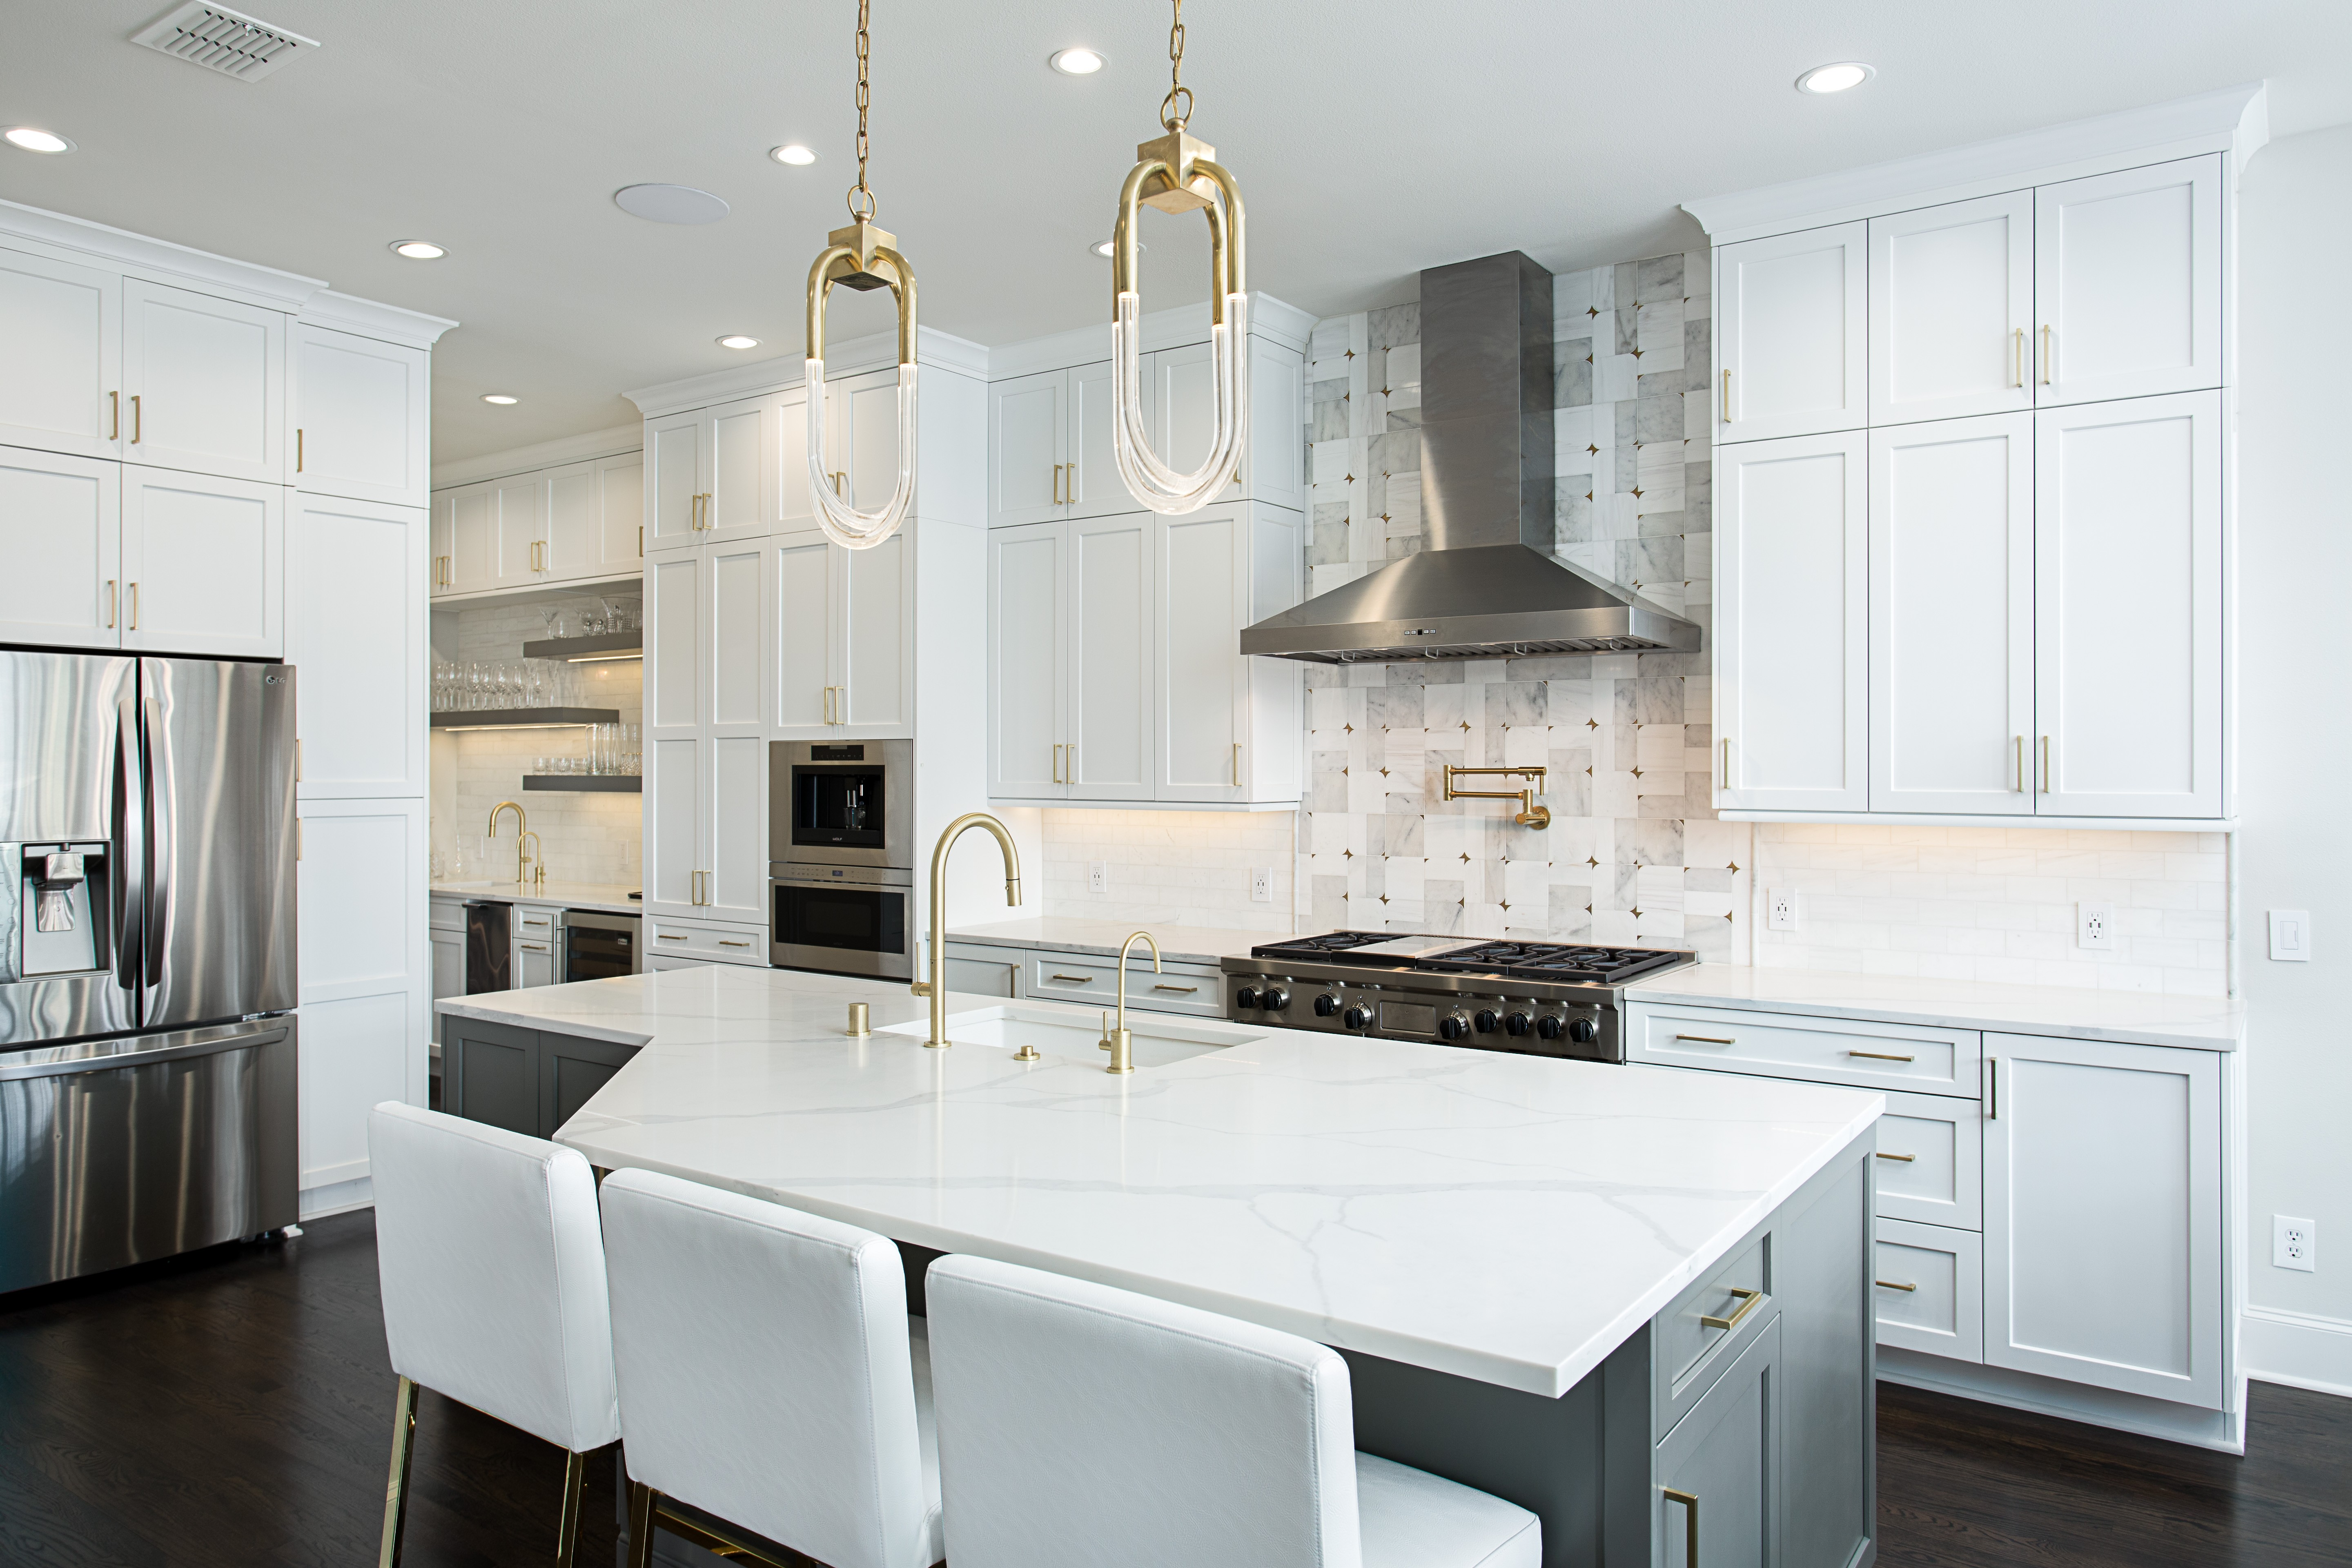 Kitchen Design Concepts Mission Statement, Employees and Hiring